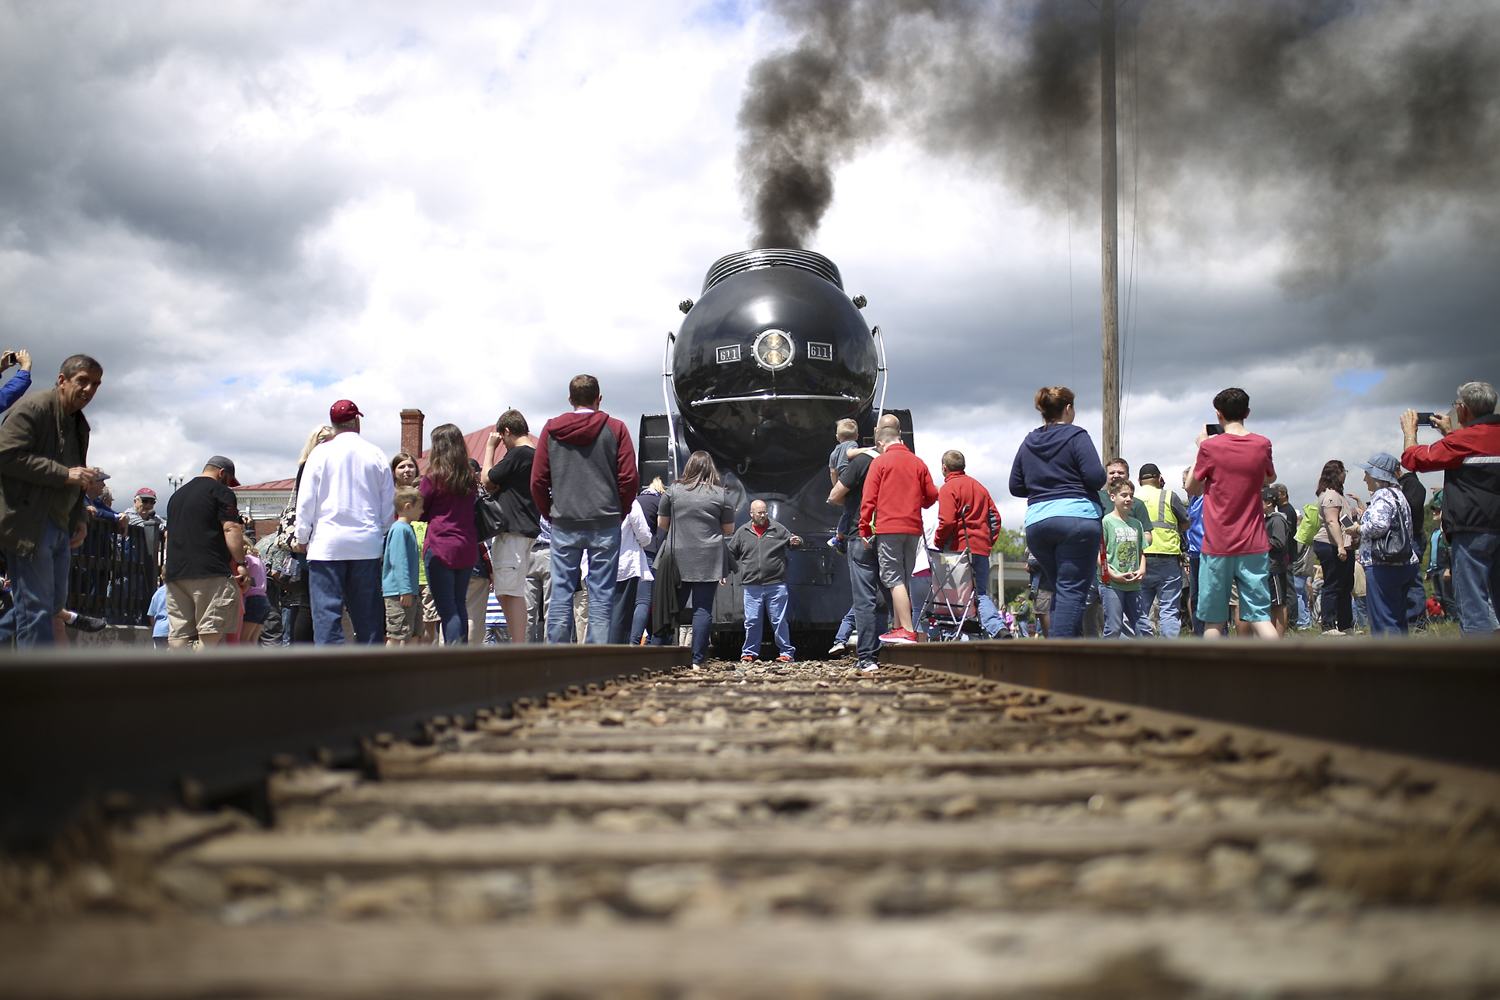 Onlookers surround the Class J steam locomotive Norfolk and Western 611 as it stops at Union Station for the first of two consecutive daily visits in Petersburg on Saturday, May 6, 2017. [Scott P. Yates/progress-index.com]